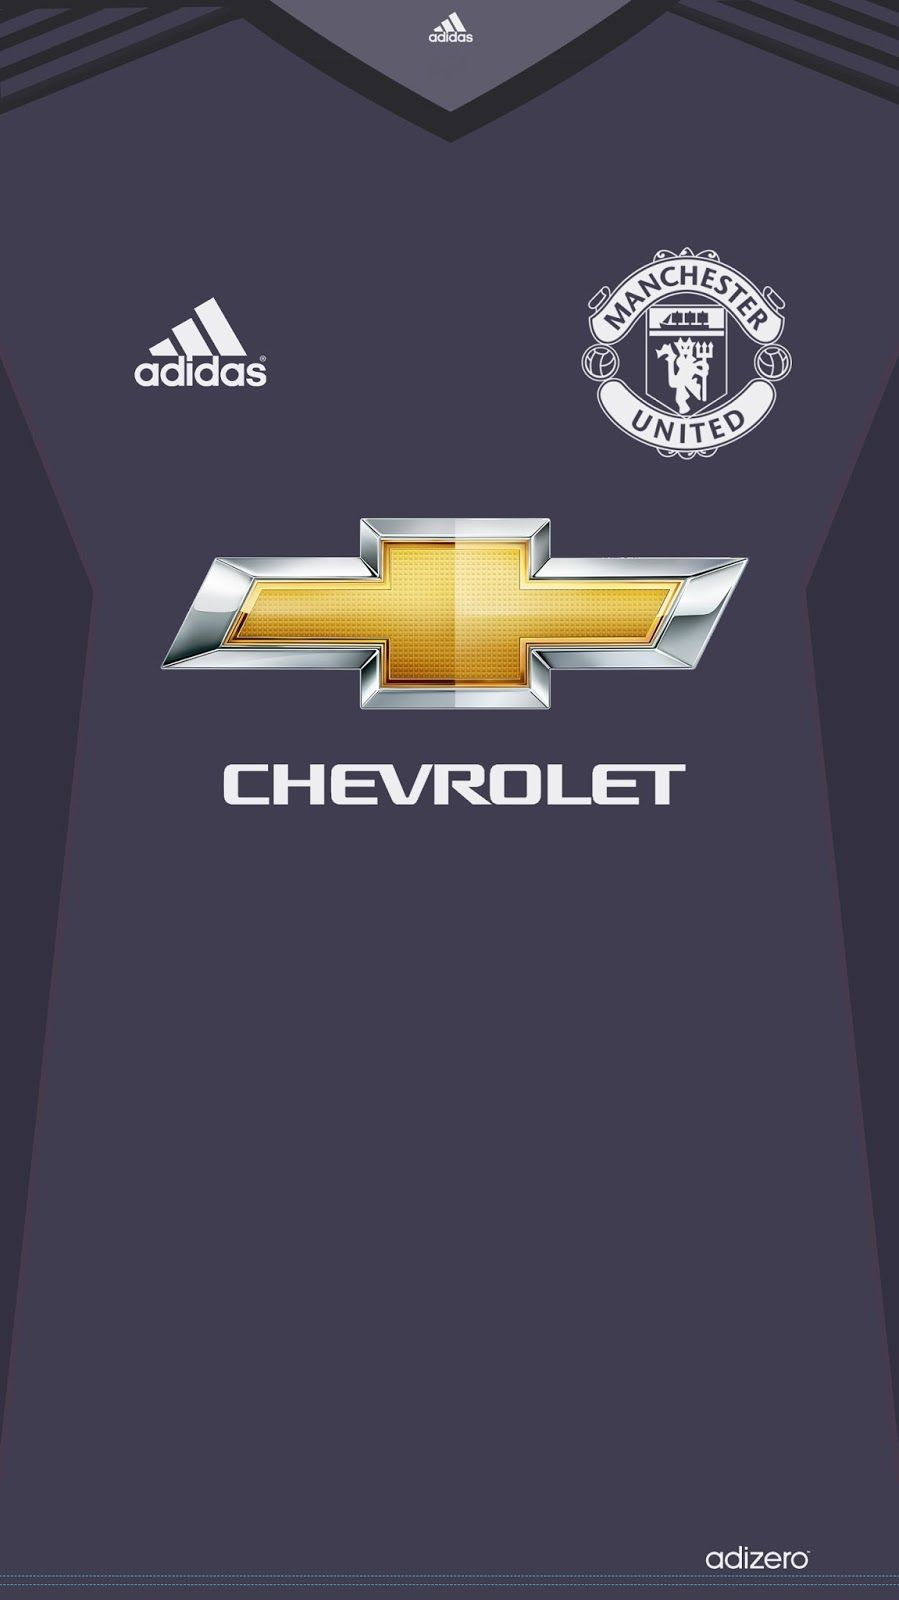 wallpapers jersey manchester united 2017 2018 premiere manchester united iphone wallpaper 2016 1426080 hd wallpaper backgrounds download manchester united iphone wallpaper 2016